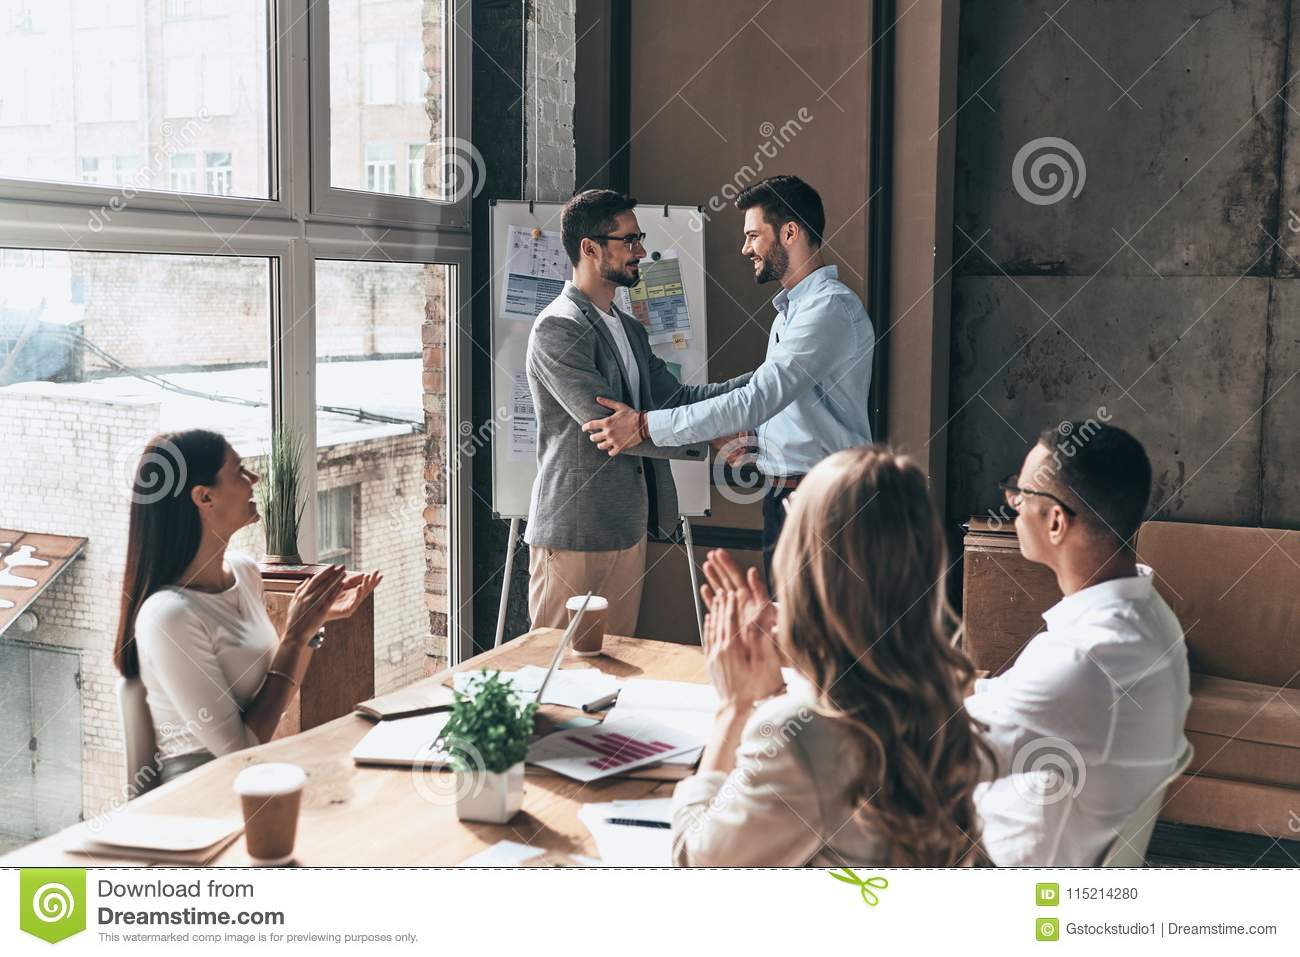 Great work! Group of business people clapping and smiling while